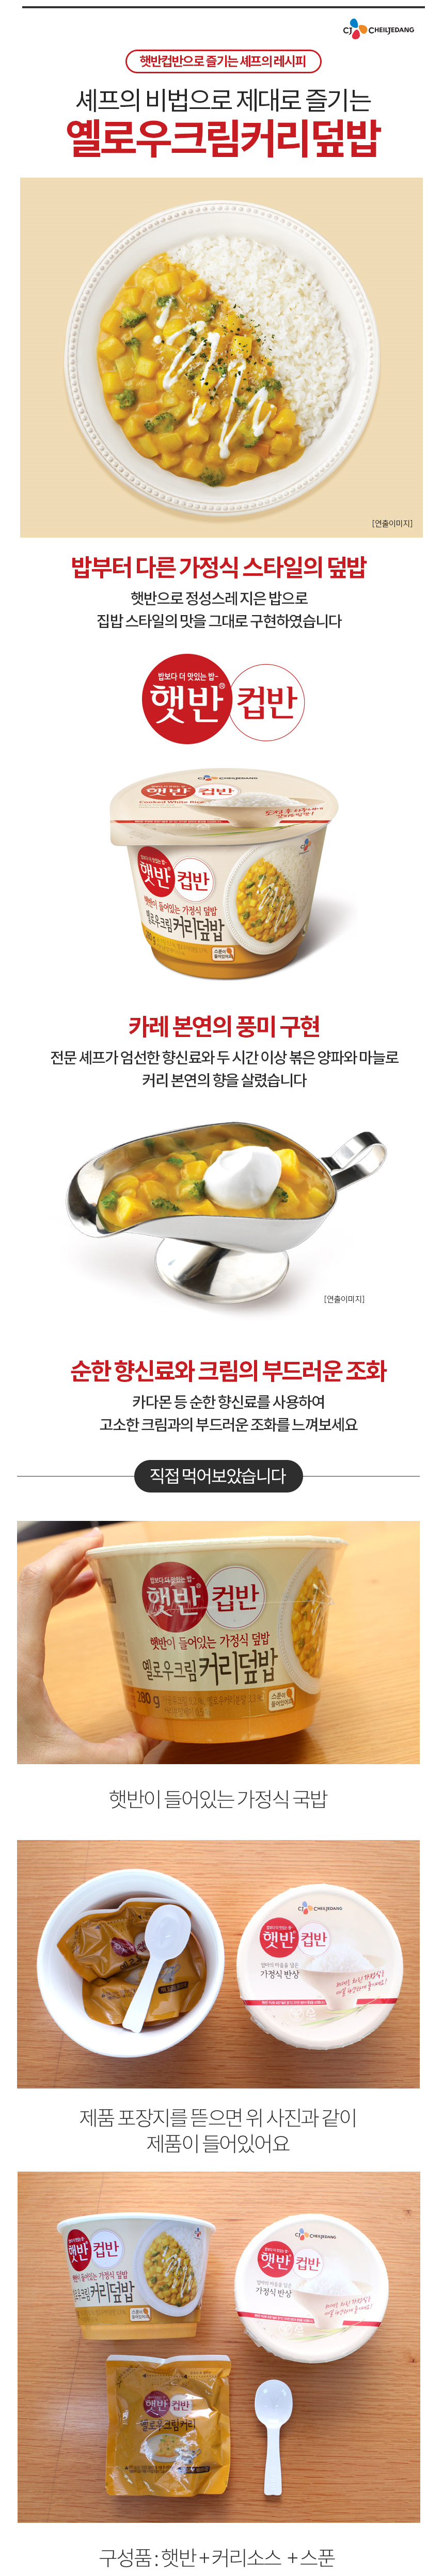 CJ Cooked White Rice with Yellow Cream Curry 9.8oz(270g), CJ 햇반 컵반 옐로우크림커리덮밥 9.8oz(280g)